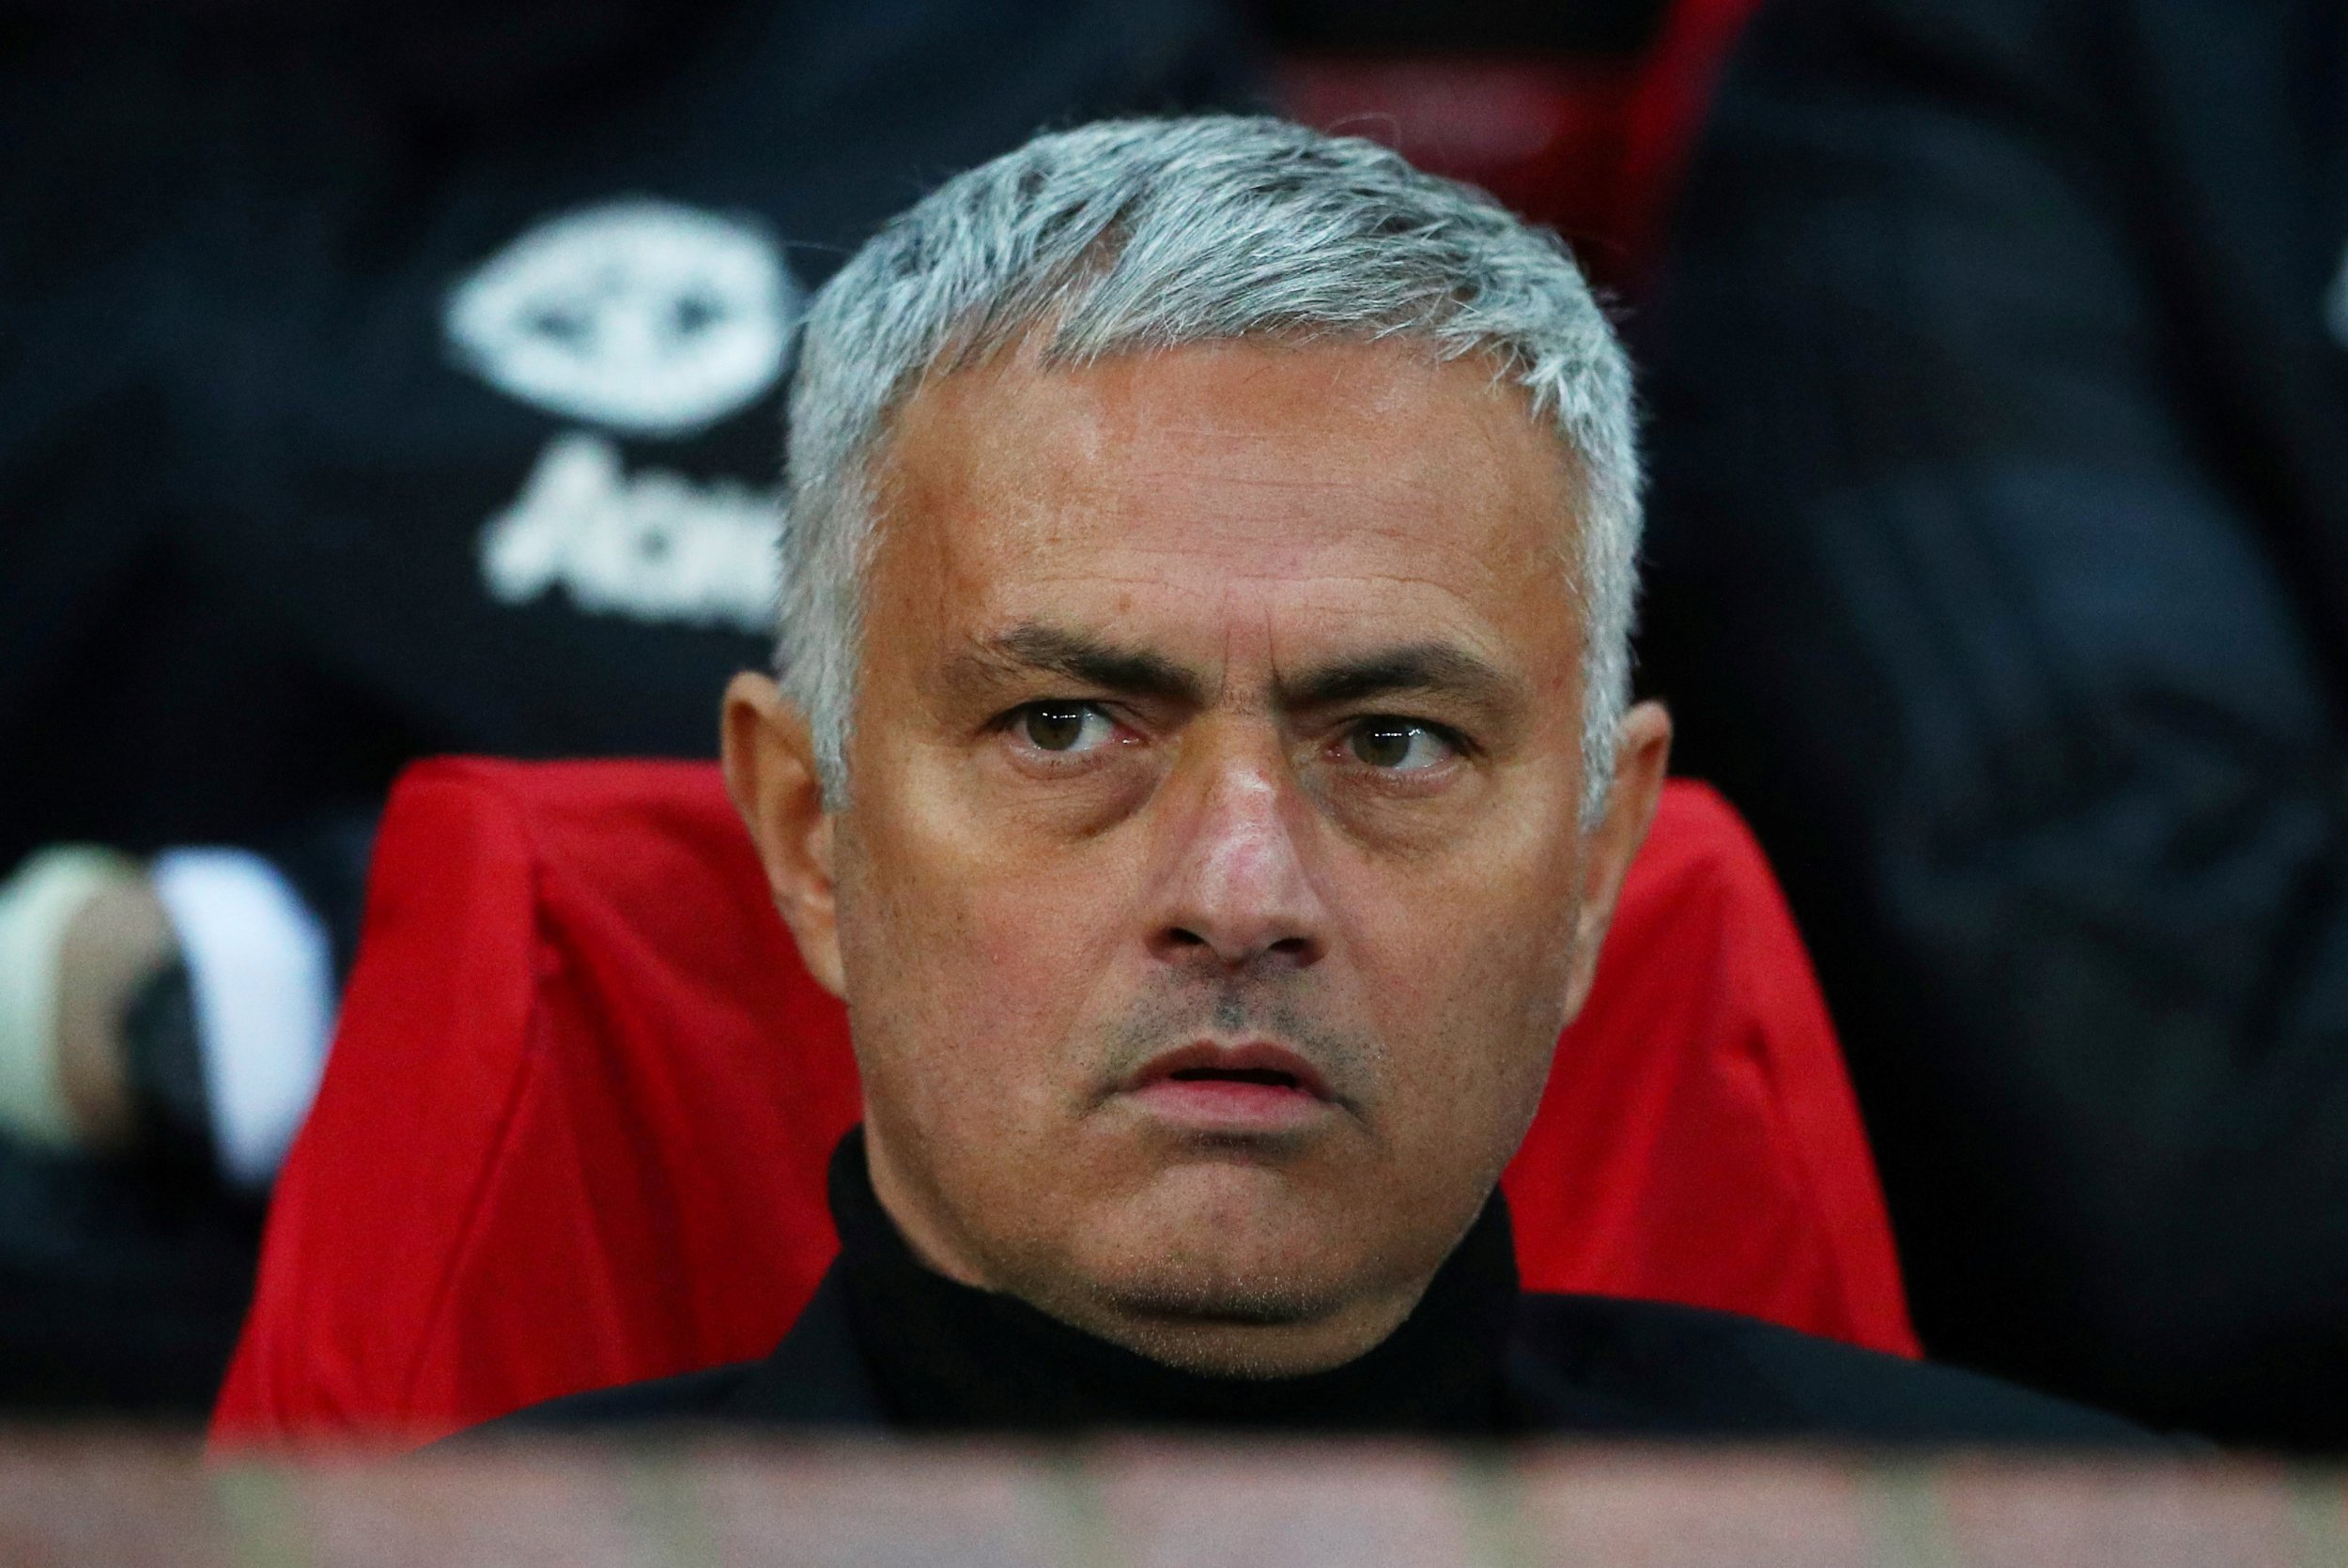 FILE PHOTO: Soccer Football - Champions League - Group Stage - Group H - Manchester United v Juventus - Old Trafford, Manchester, Britain - October 23, 2018 Manchester United manager Jose Mourinho REUTERS/Hannah McKay/File Photo